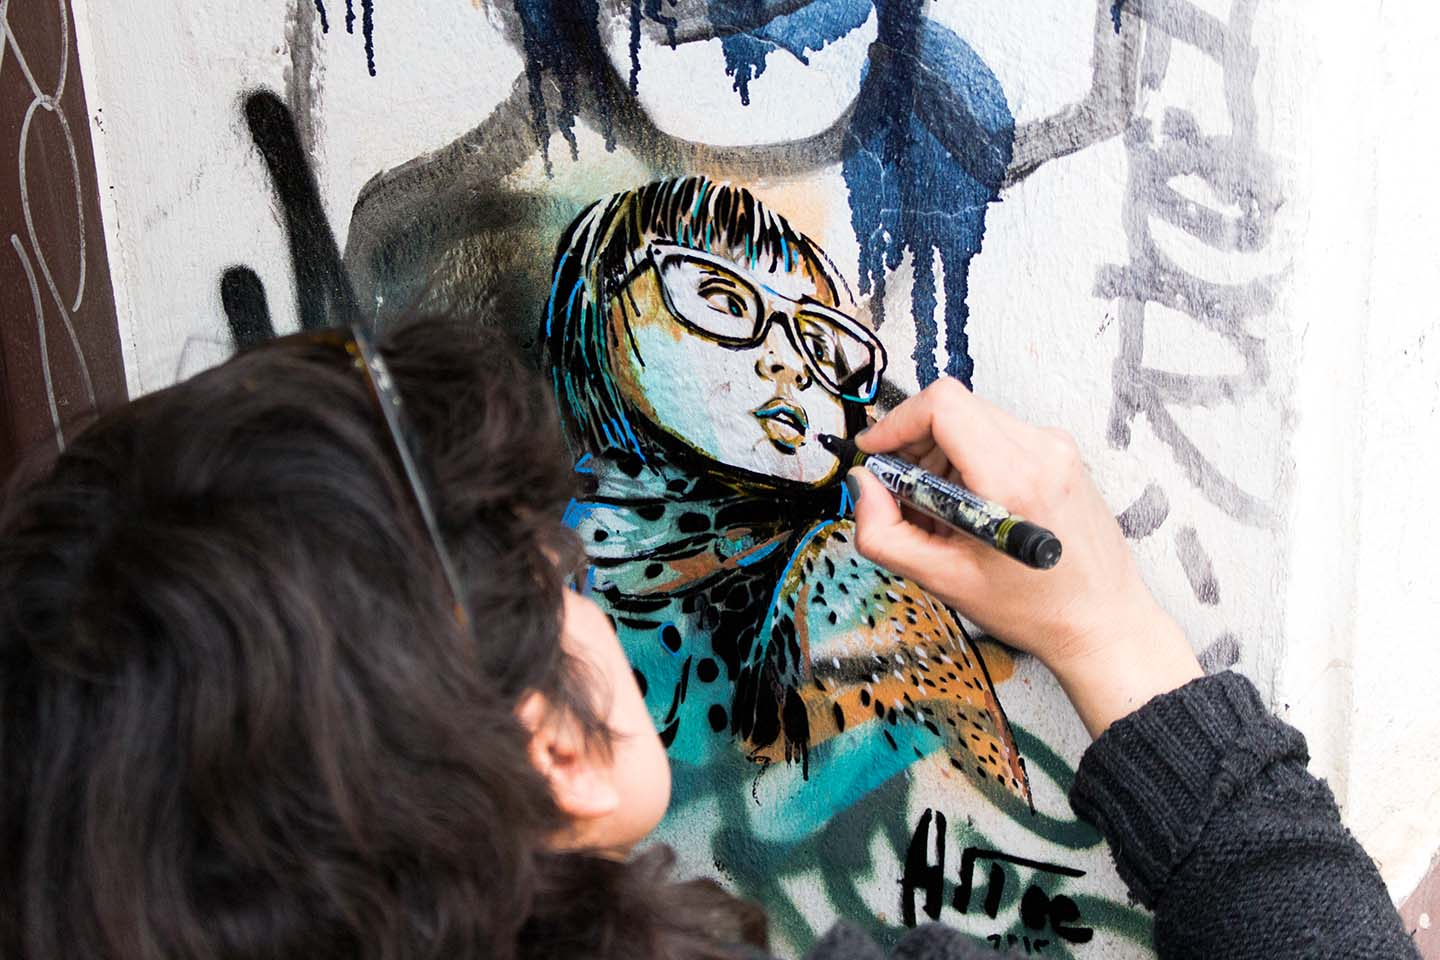 Alice Pasquini painting Streetart in Berlin 2015